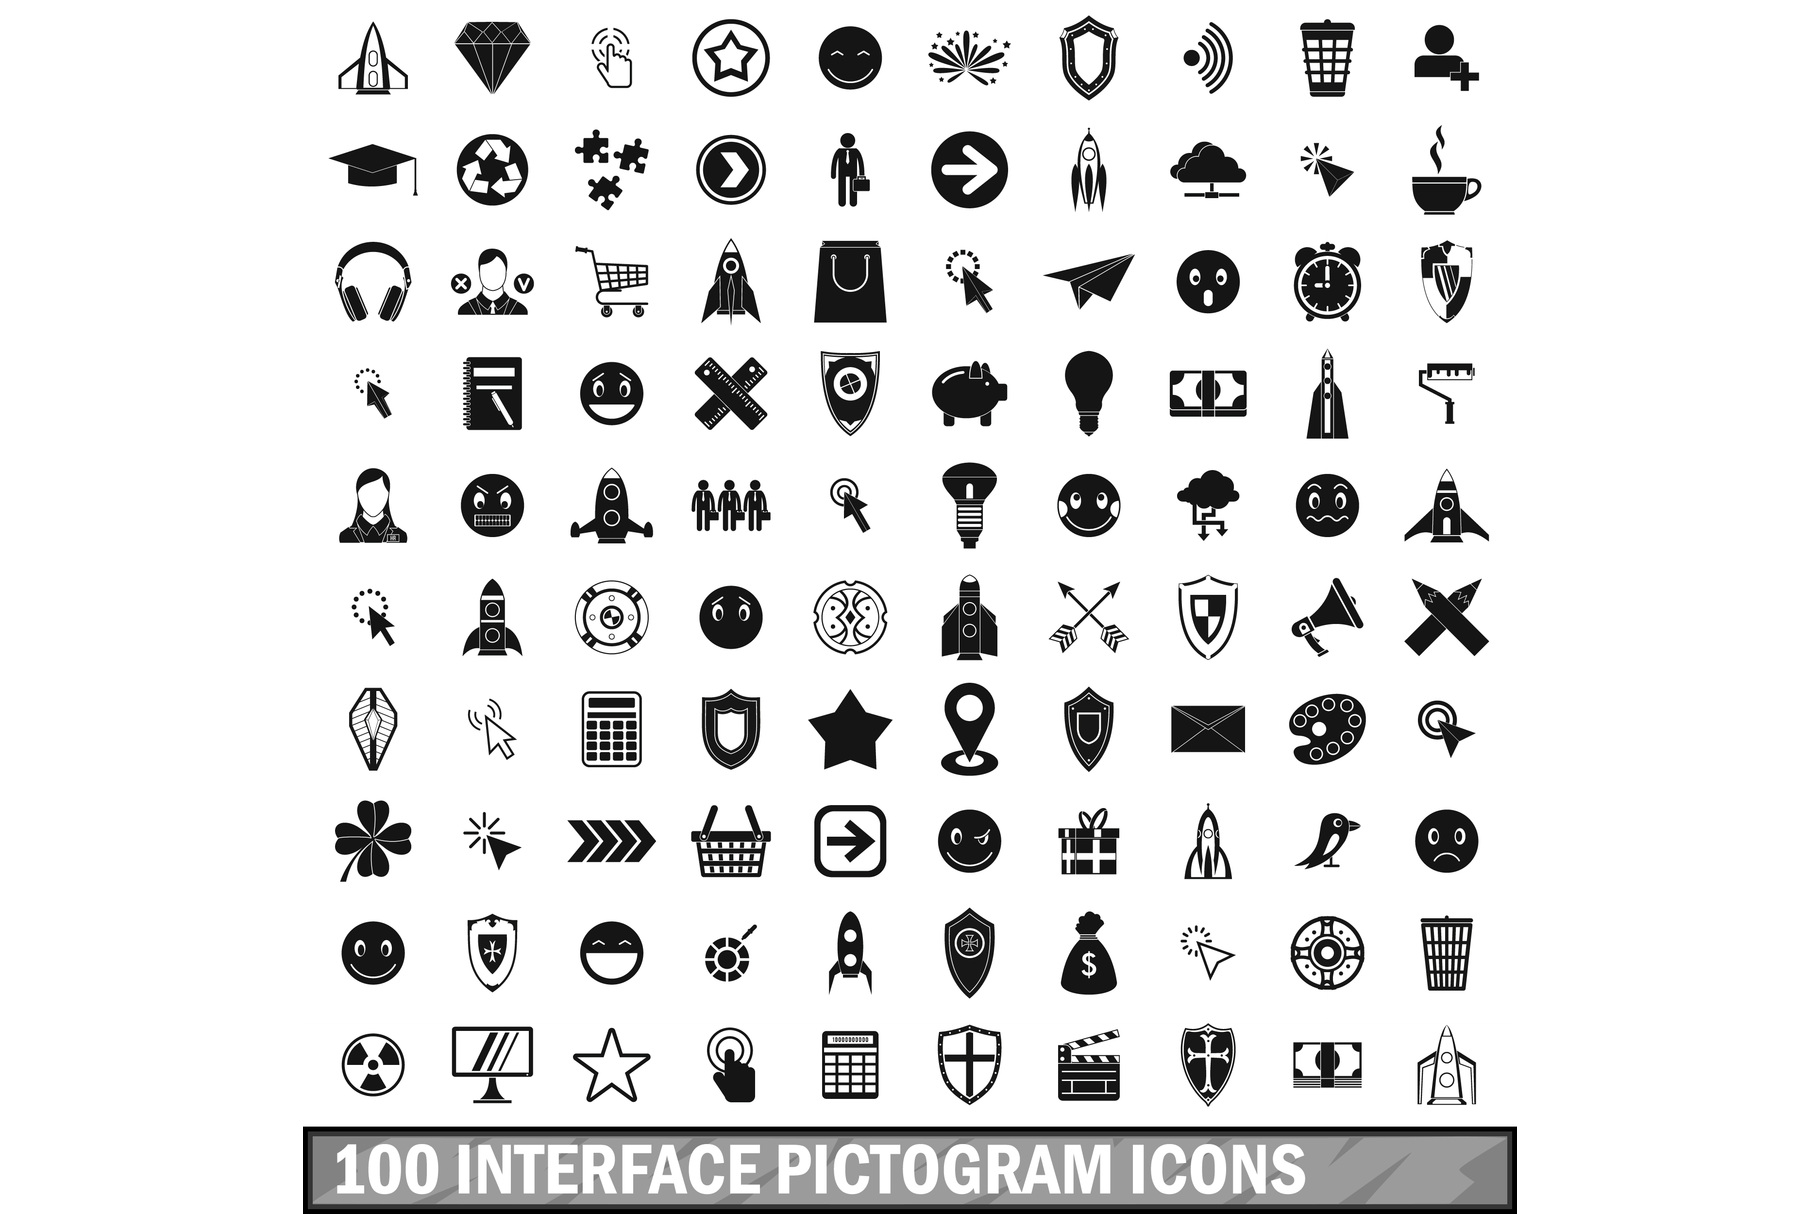 100 interface pictogram icons set, simple style example image 1